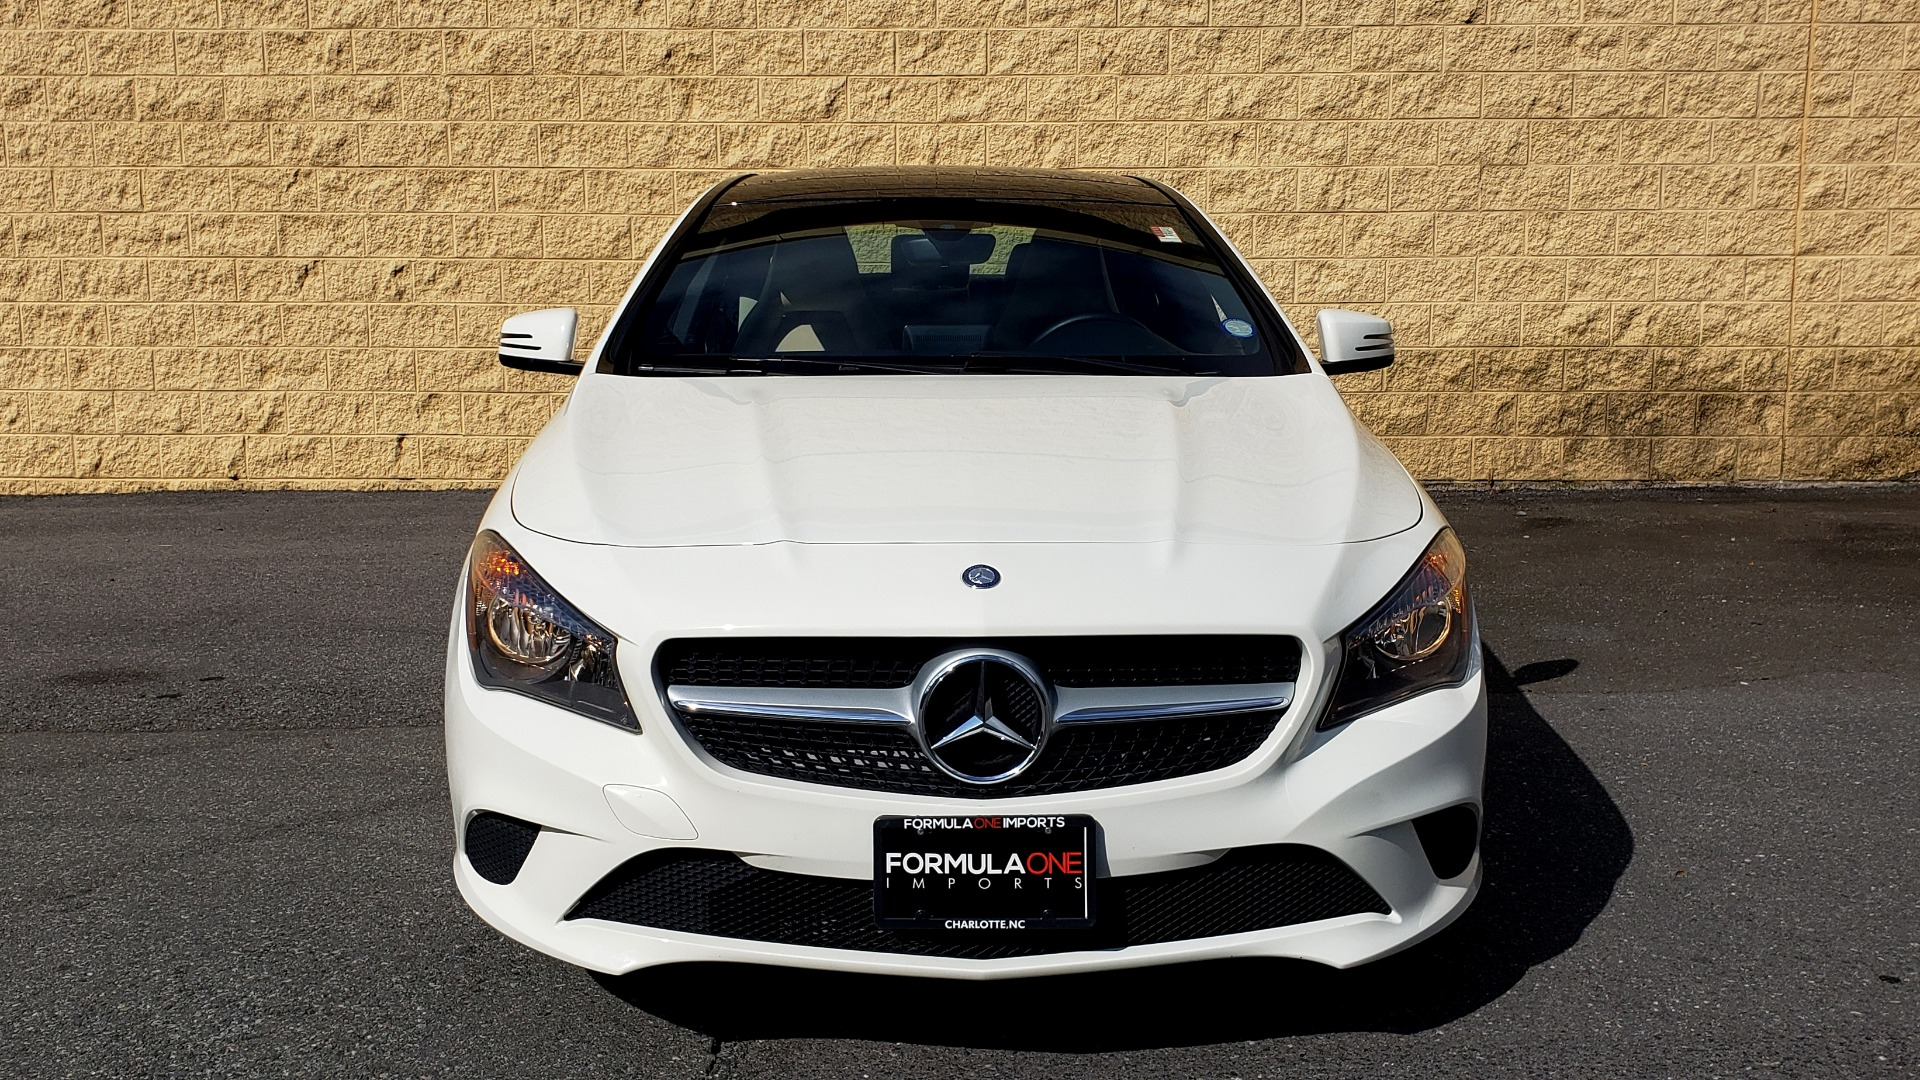 Used 2015 Mercedes-Benz CLA-Class CLA250 / FWD / SUNROOF / SPORT SUSP / CAMERA for sale Sold at Formula One Imports in Charlotte NC 28227 15